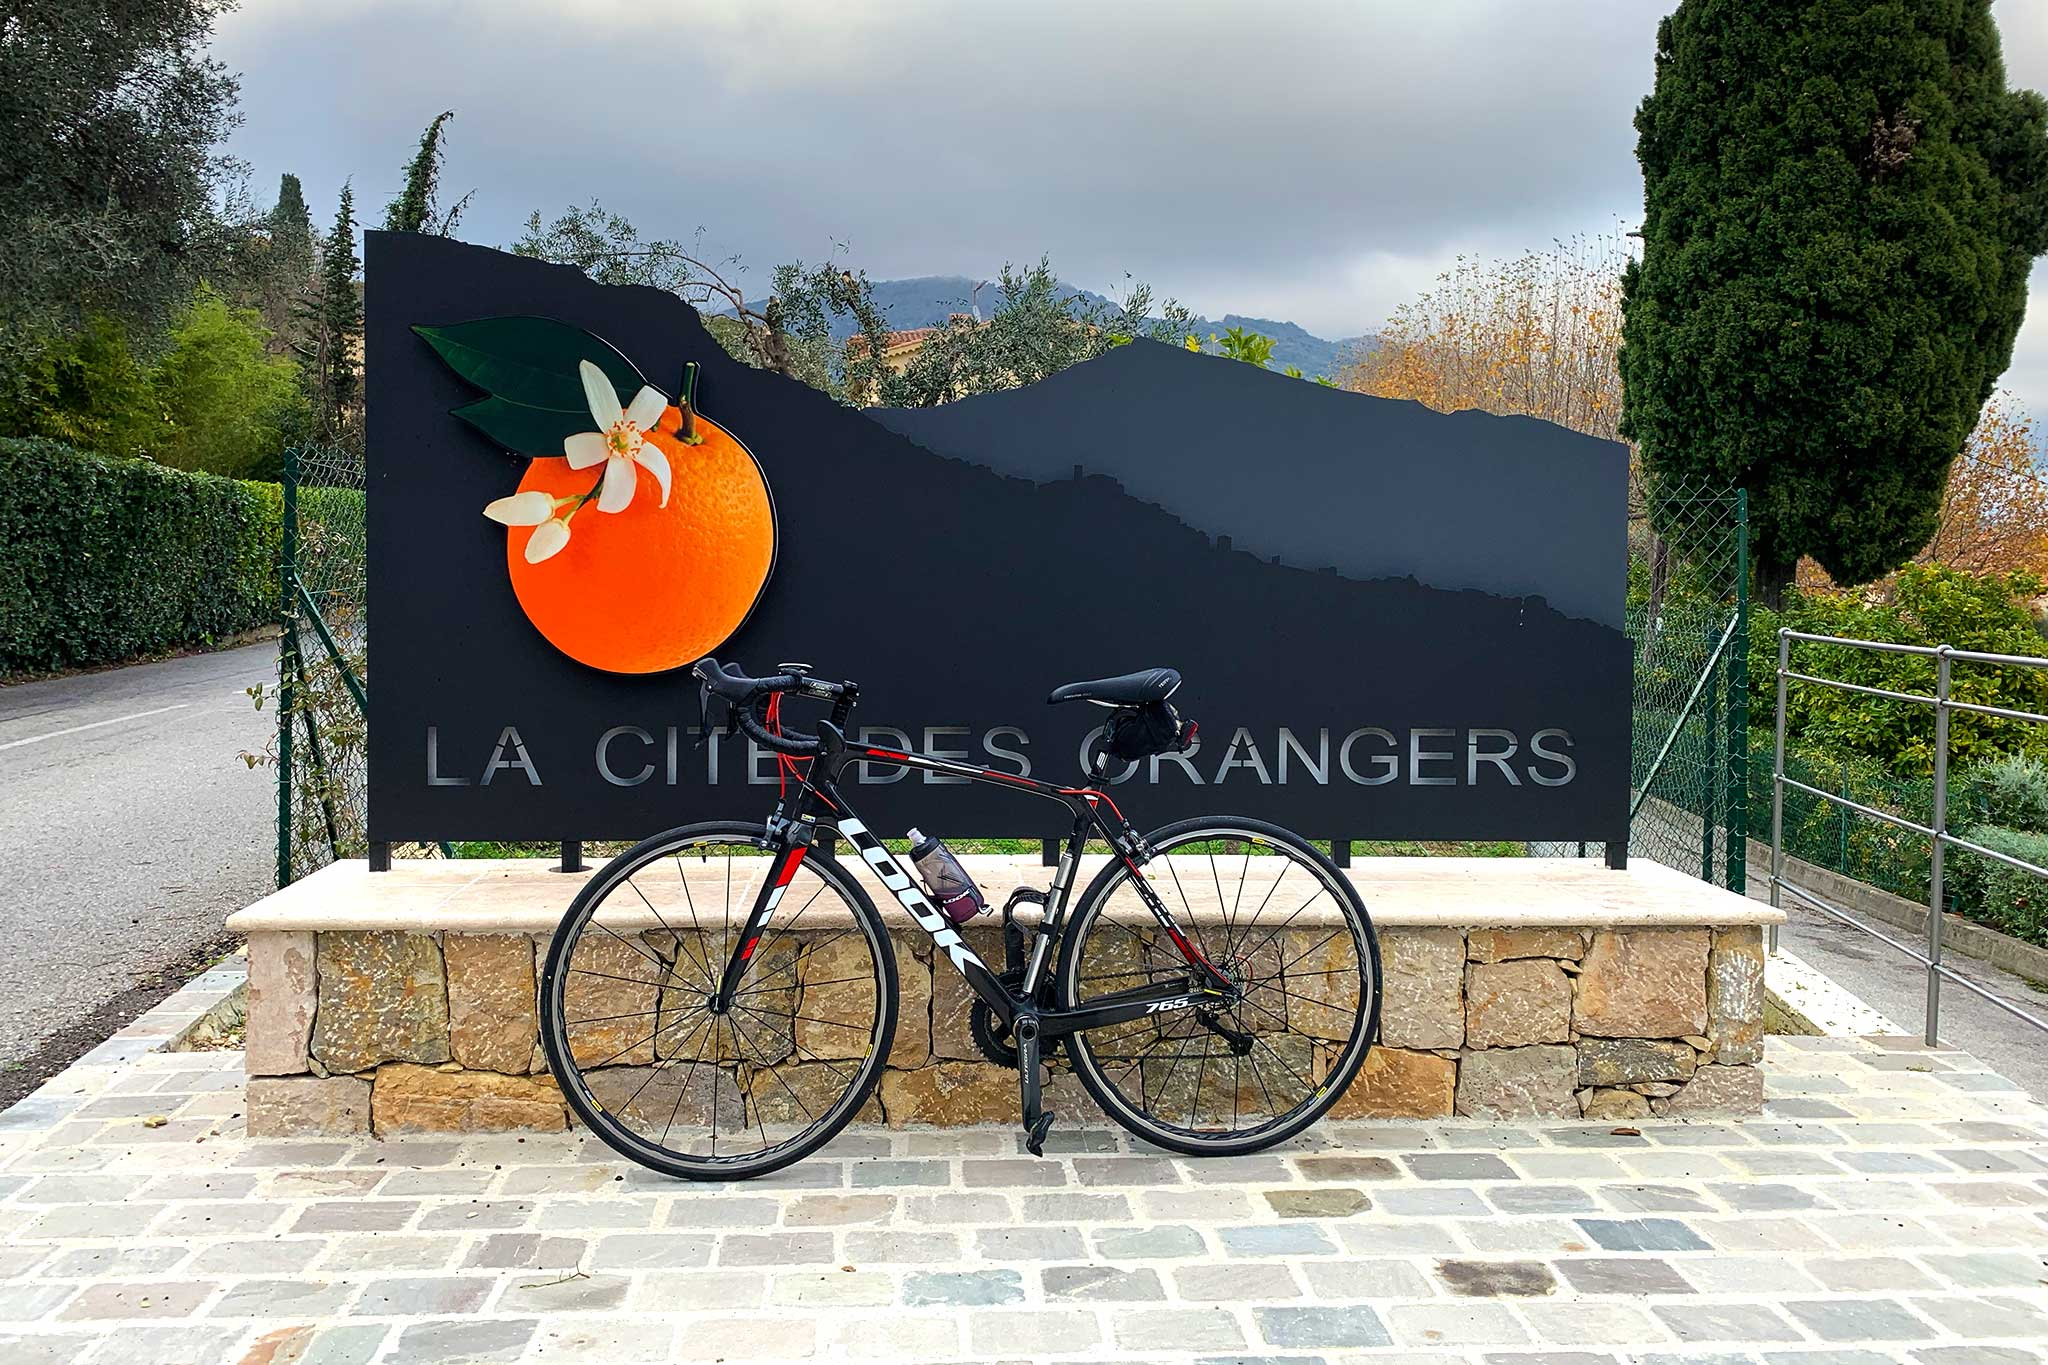 88 More Villages By Bike Steve And Carole In Vence